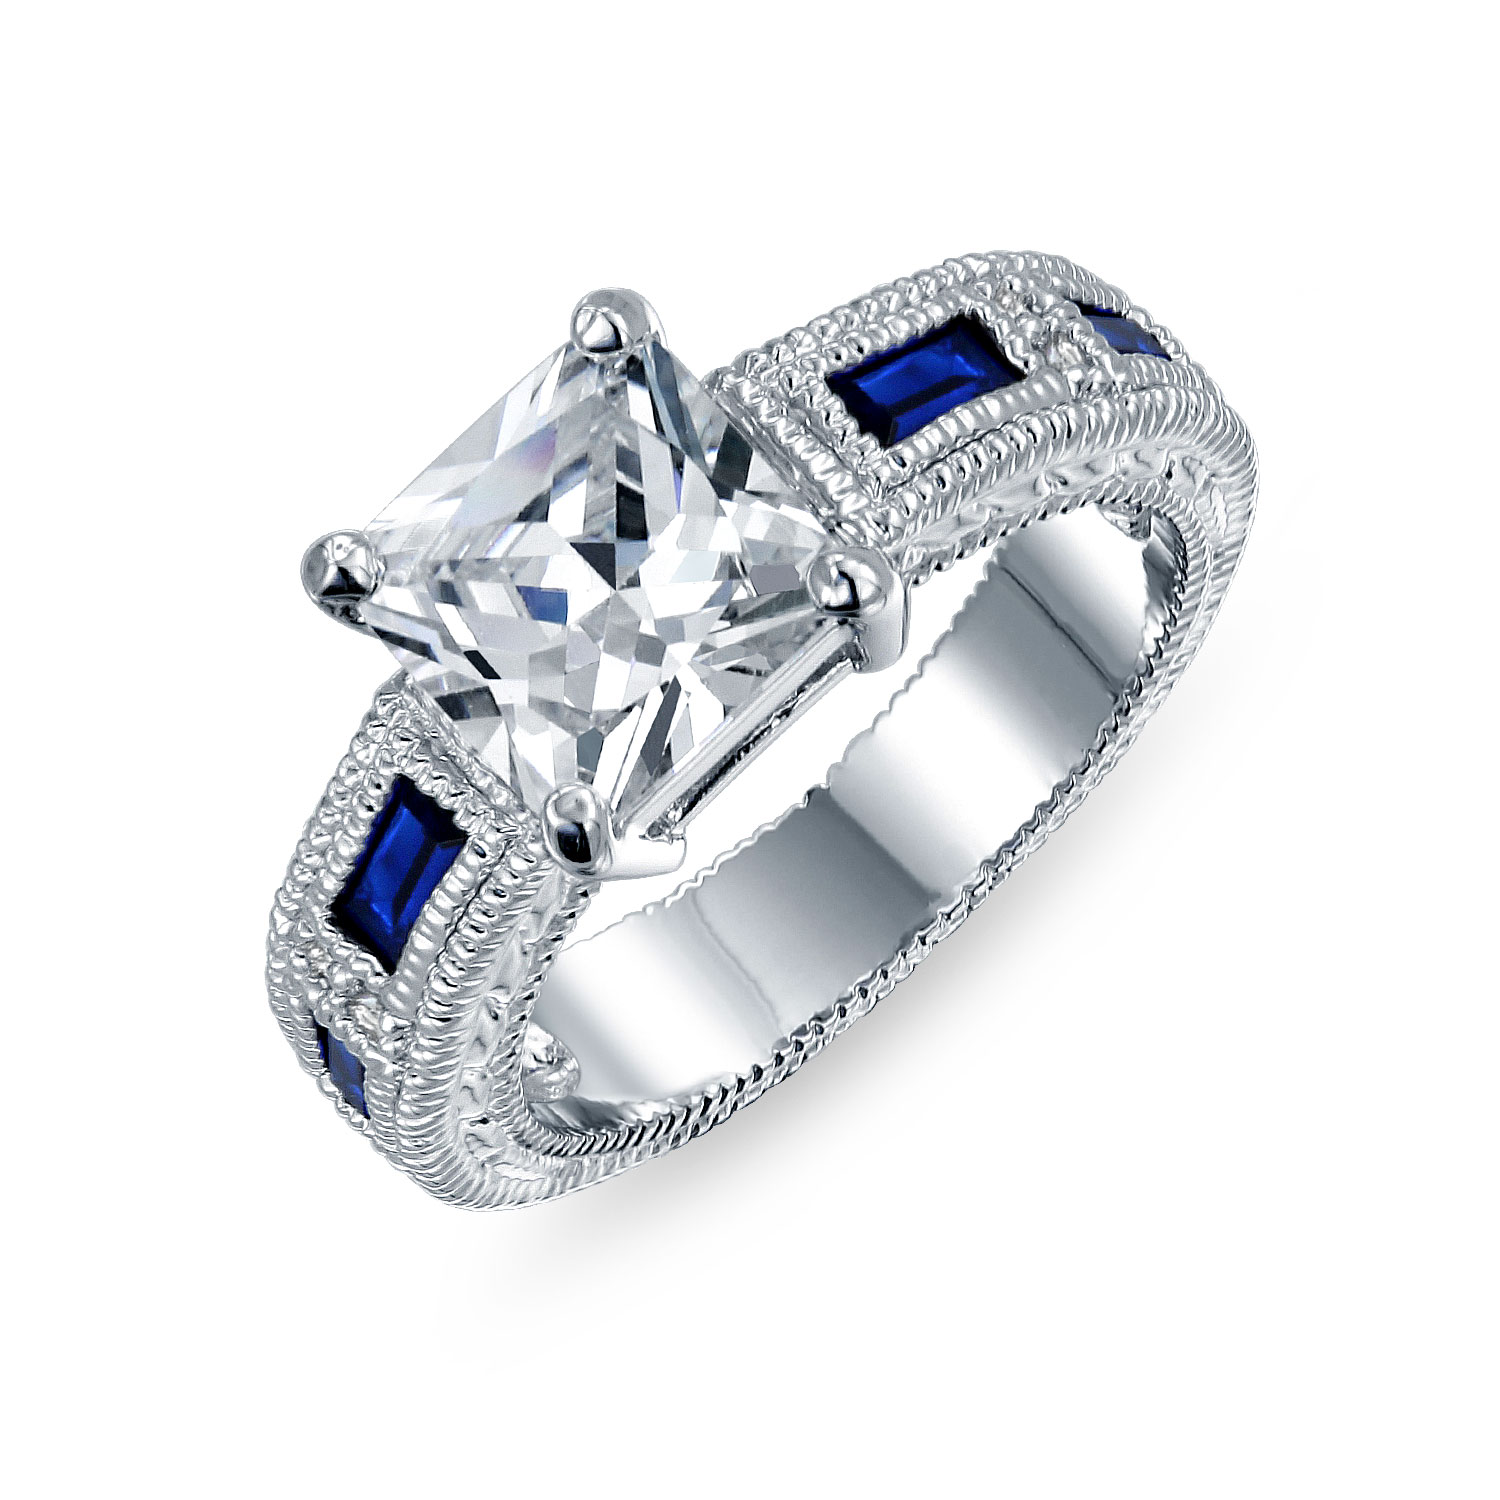 Bling Jewelry Princess Cut CZ Simulated Sapphire Baguette Engagement Ring Rhodium Plated Brass